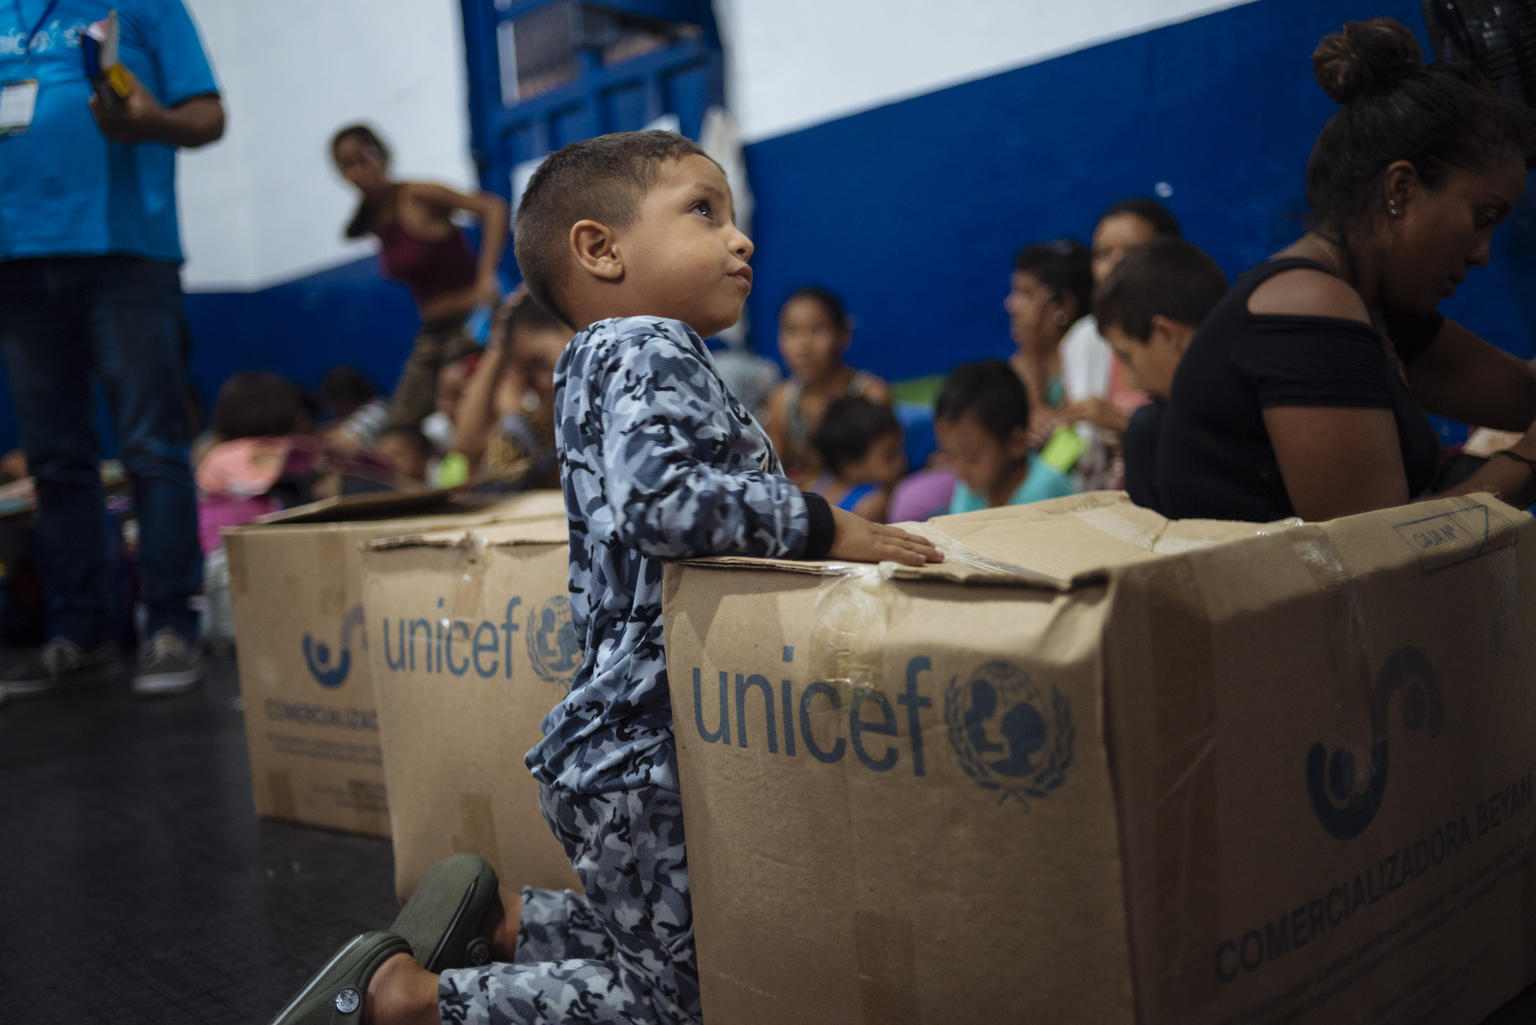 On 24 April 2019 in Cucuta in Colombia, children play near boxes of UNICEF humanitarian supplies at the Samaritan's Purse resting point for walkers who will continue their journey from Venezuela by foot. In February 2019, countries in Latin America and the Caribbean are hosting approximately 2.7 million Venezuelan migrants and refugees of the 3.377.252 million Venezuelans migrating worldwide. Based on inter-agency projections, UNICEF estimates that in 2019, over 1.1 million children will need assistance in Brazil, Colombia, Ecuador, Guyana, Panama, Peru and Trinidad and Tobago. Those in need include Venezuelan migrants and refugees, host communities and non-Venezuelans returnees. During the first two months of 2019, the political and social situation in Colombia underwent significant changes, culminating in closure of the six formal crossing points along the 1,400 km border between the two countries and the militarization of certain informal crossing points and river routes. This blanket closure was subsequently loosened to permit the crossing of urgent medical cases and school children at international bridges. Several thousand school children living in Venezuela have been crossing daily for several years to take classes in Colombian schools in Cucuta. The number of migrants using non-formal crossing sites such as rural paths or trochas and rivers to access certain Colombia sites increased significantly over the reporting period. UNICEF continues to operate its humanitarian activities in the prioritized sites of three main border departments (Arauca, Norte de Santander and La Guajira) as well as in six other departments across the country. Technical support continues to key governmental institutions such as the Colombian Institute for Family Welfare (ICBF), the Ministry of Health (MoH) and the Ministry of Education (MoE) to support capacity building and strengthen the rights of children and adolescents within the overall response. UNICEF has identified seven st